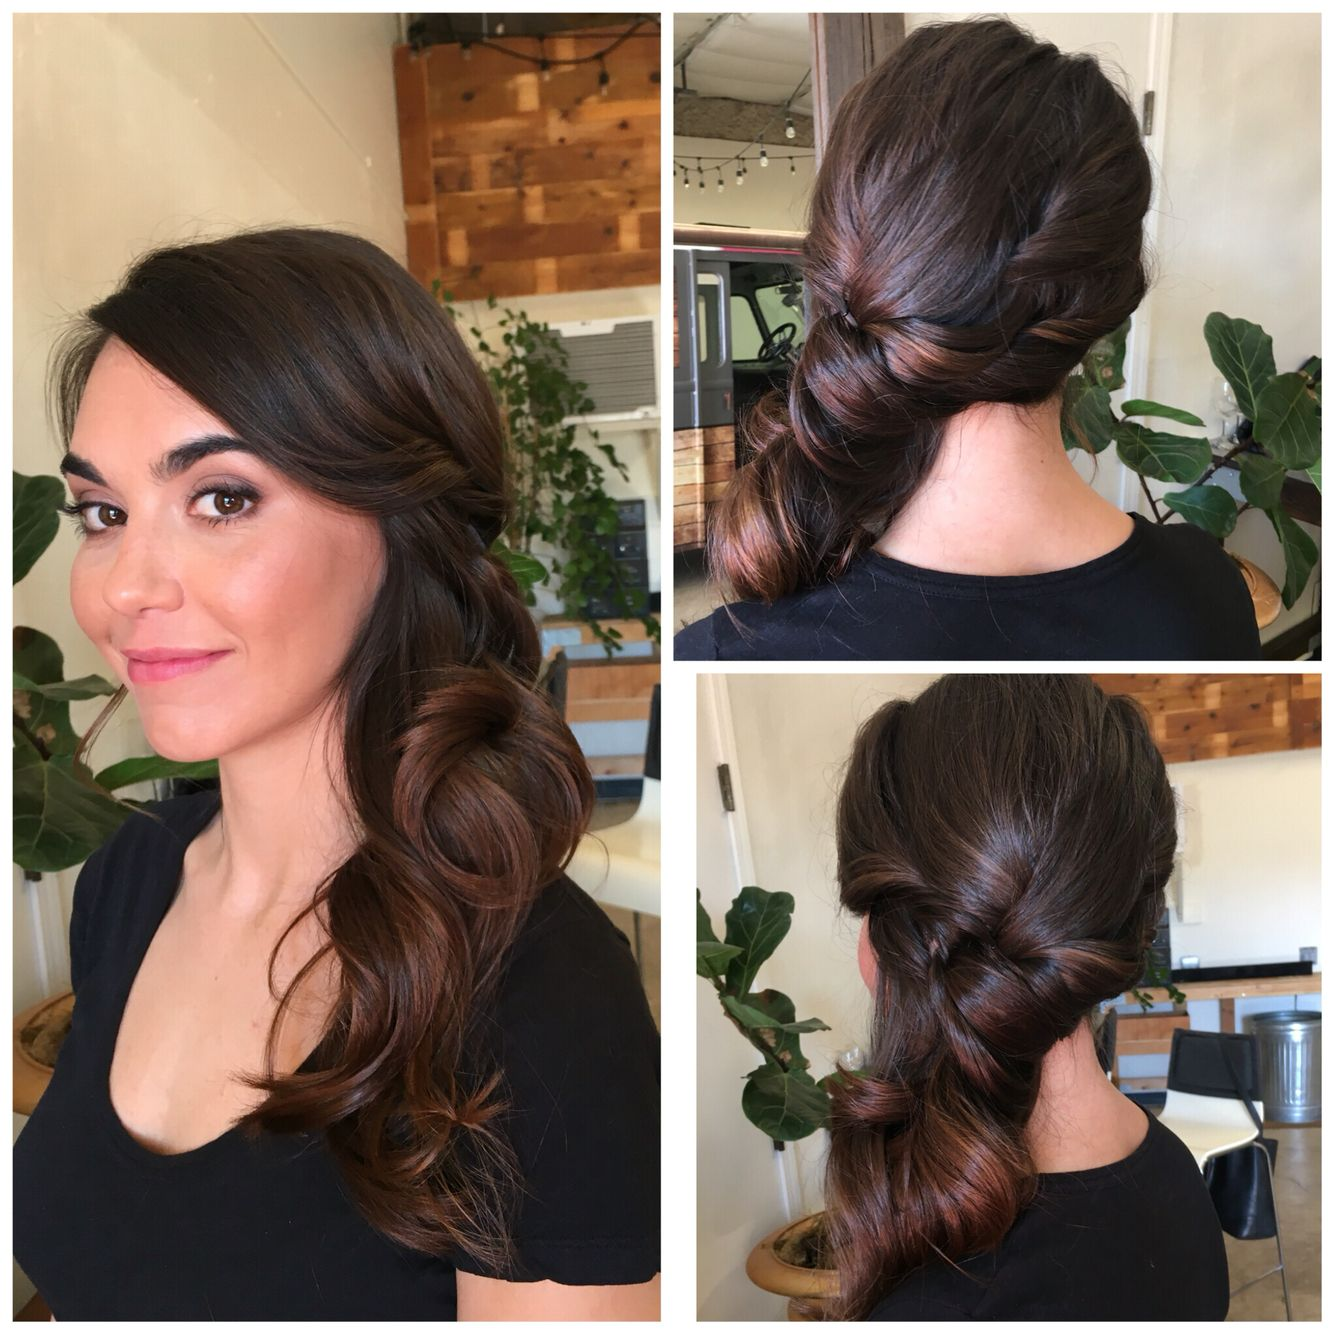 side curls, loose curls, wedding hair | blushing bride | pinterest